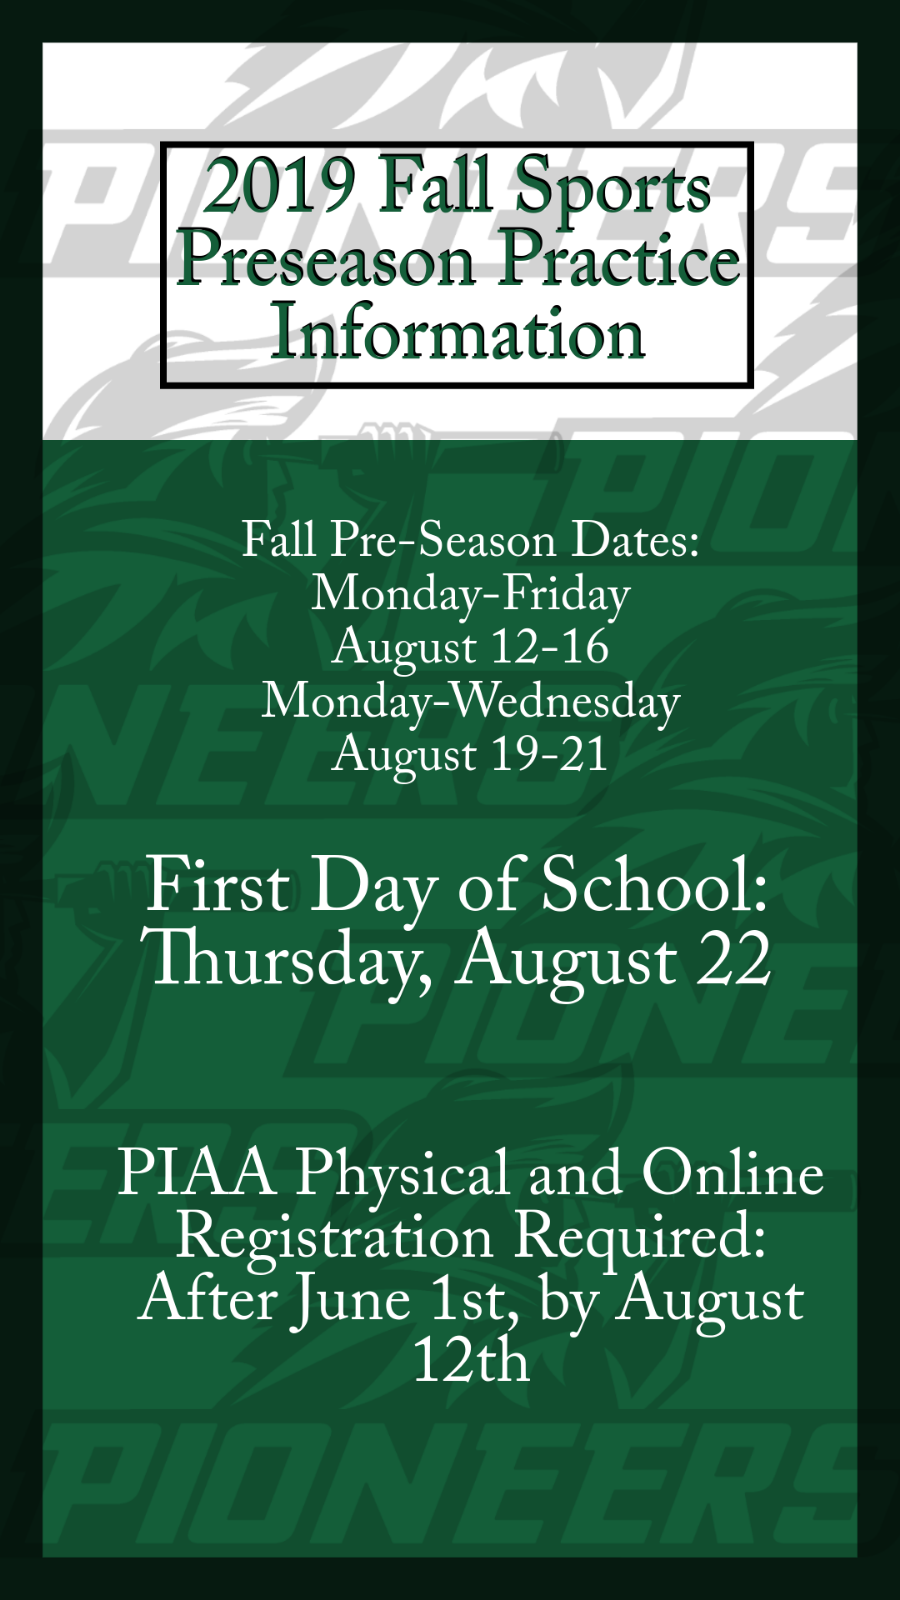 Fall Sports 2019 Pre-Season Information